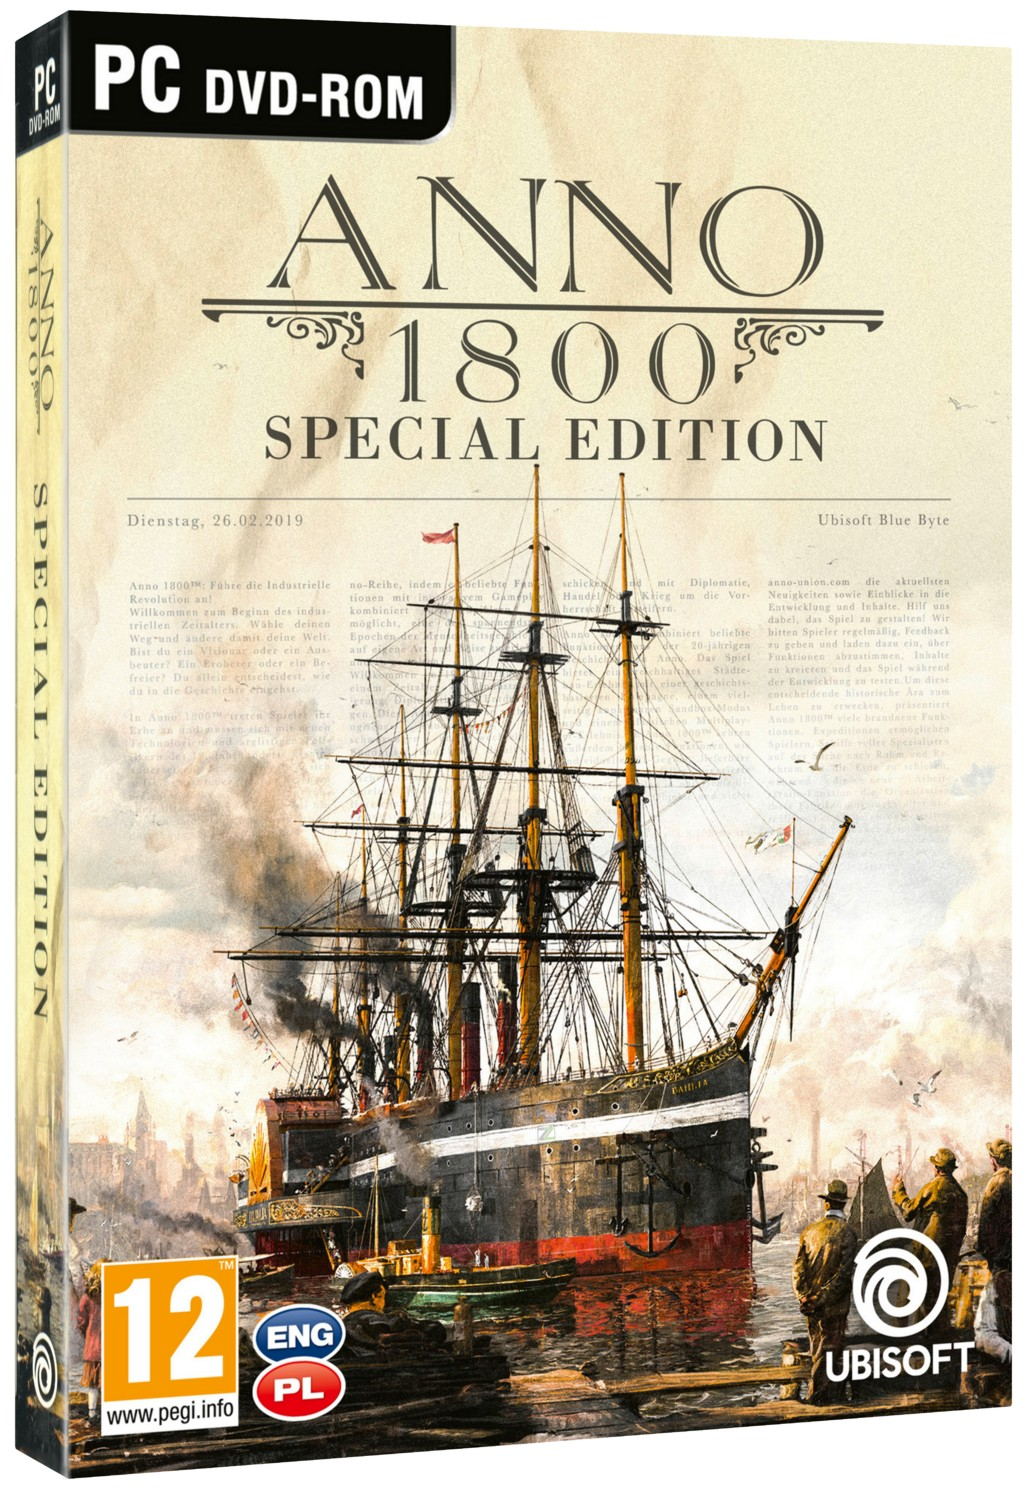 ANNO 1800 D1 Edition - PC